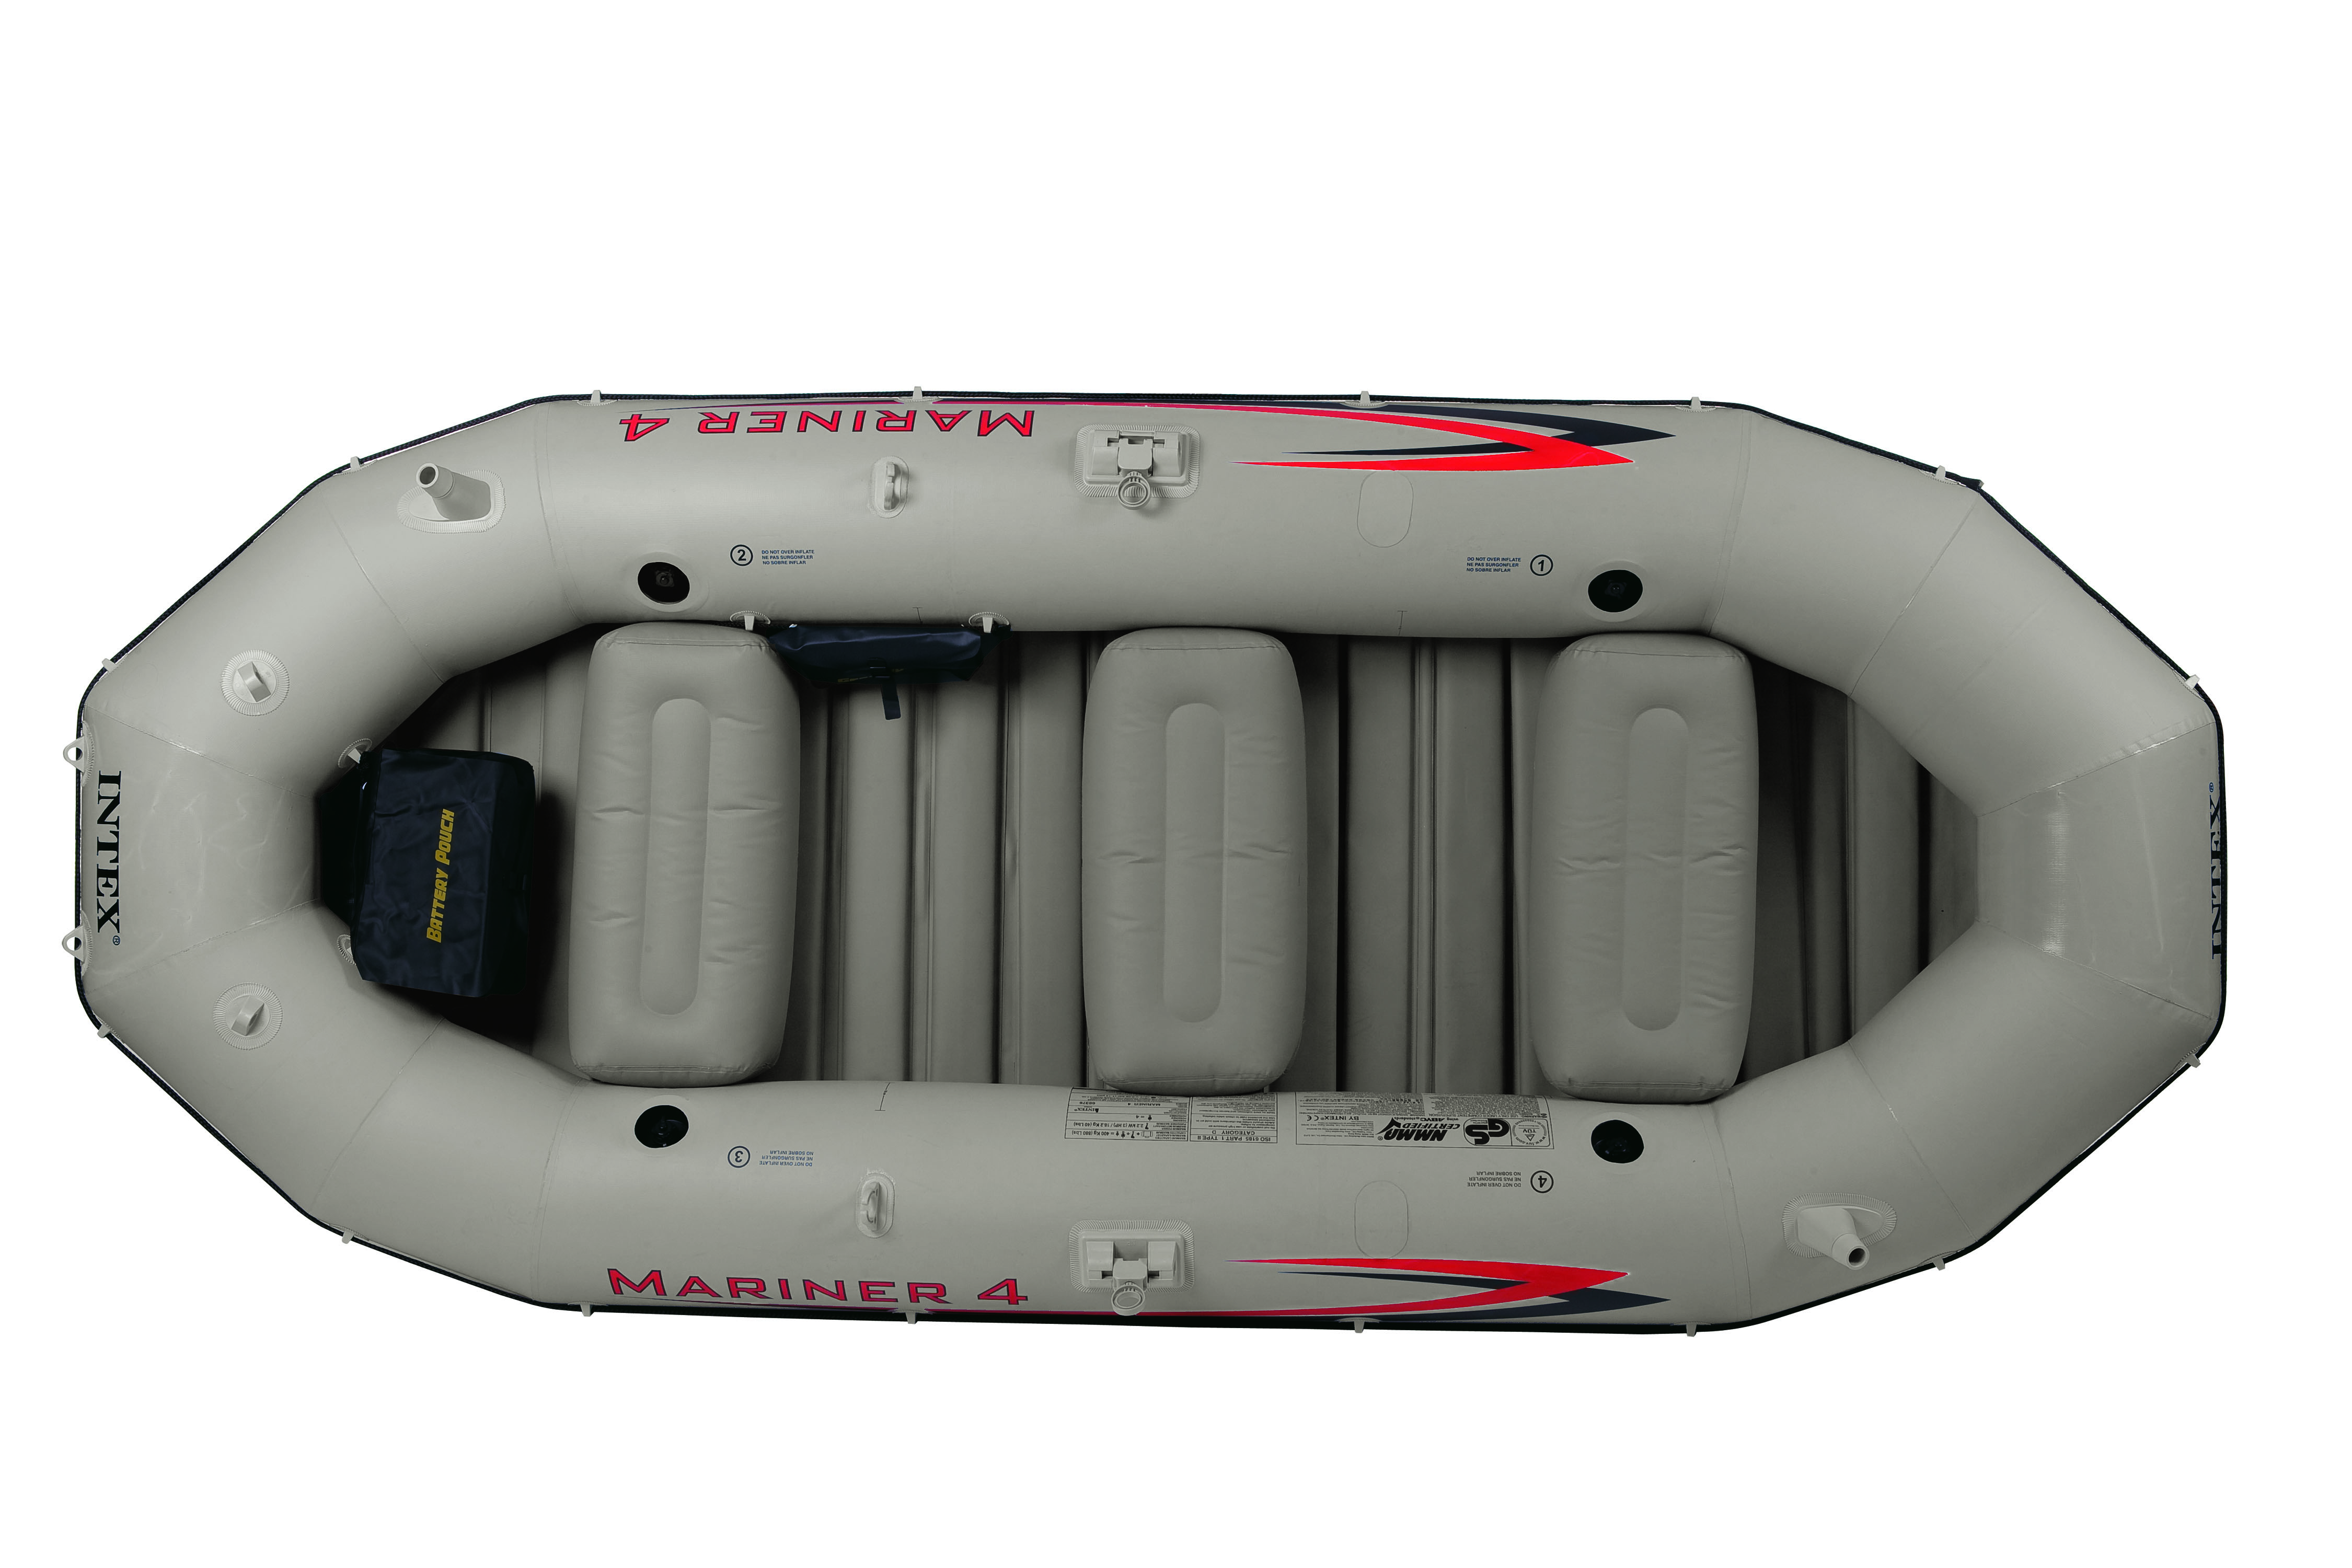 Piscina Intex Inverno Gommone Mariner 4 Intex 68376np Piscina Co